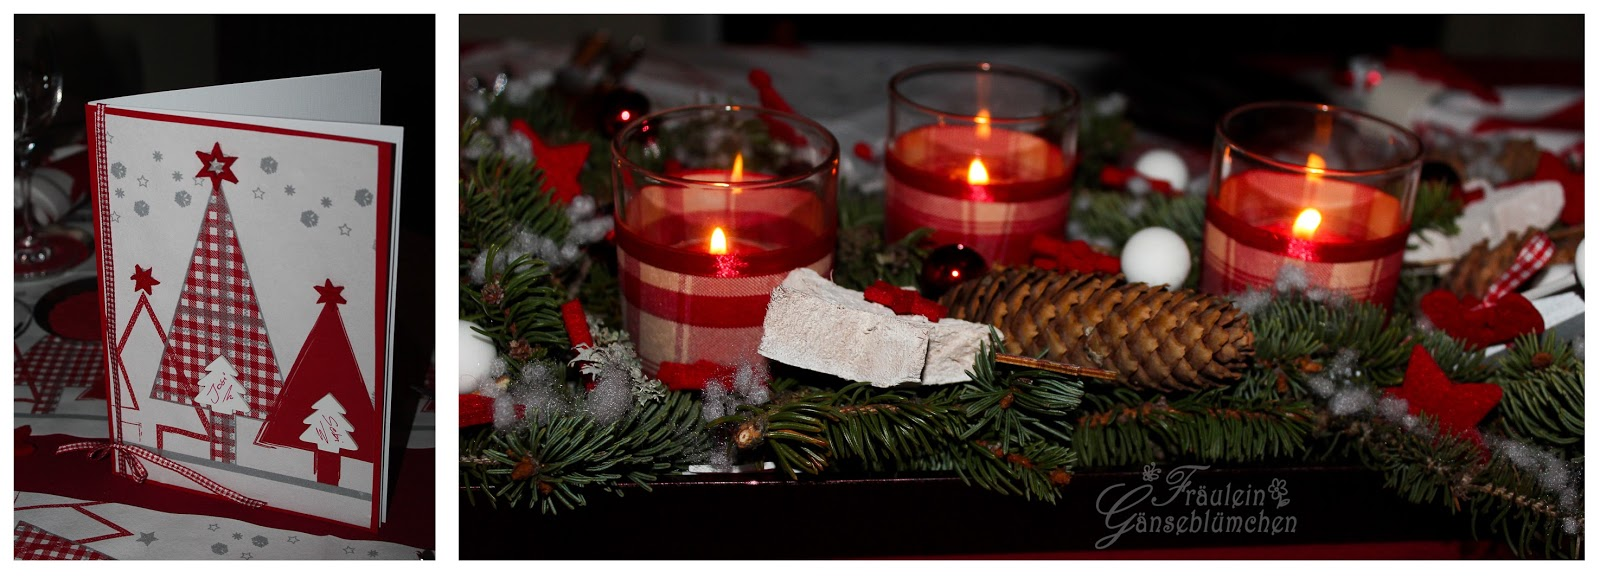 fr ulein g nsebl mchen weihnachts dinner 2013. Black Bedroom Furniture Sets. Home Design Ideas